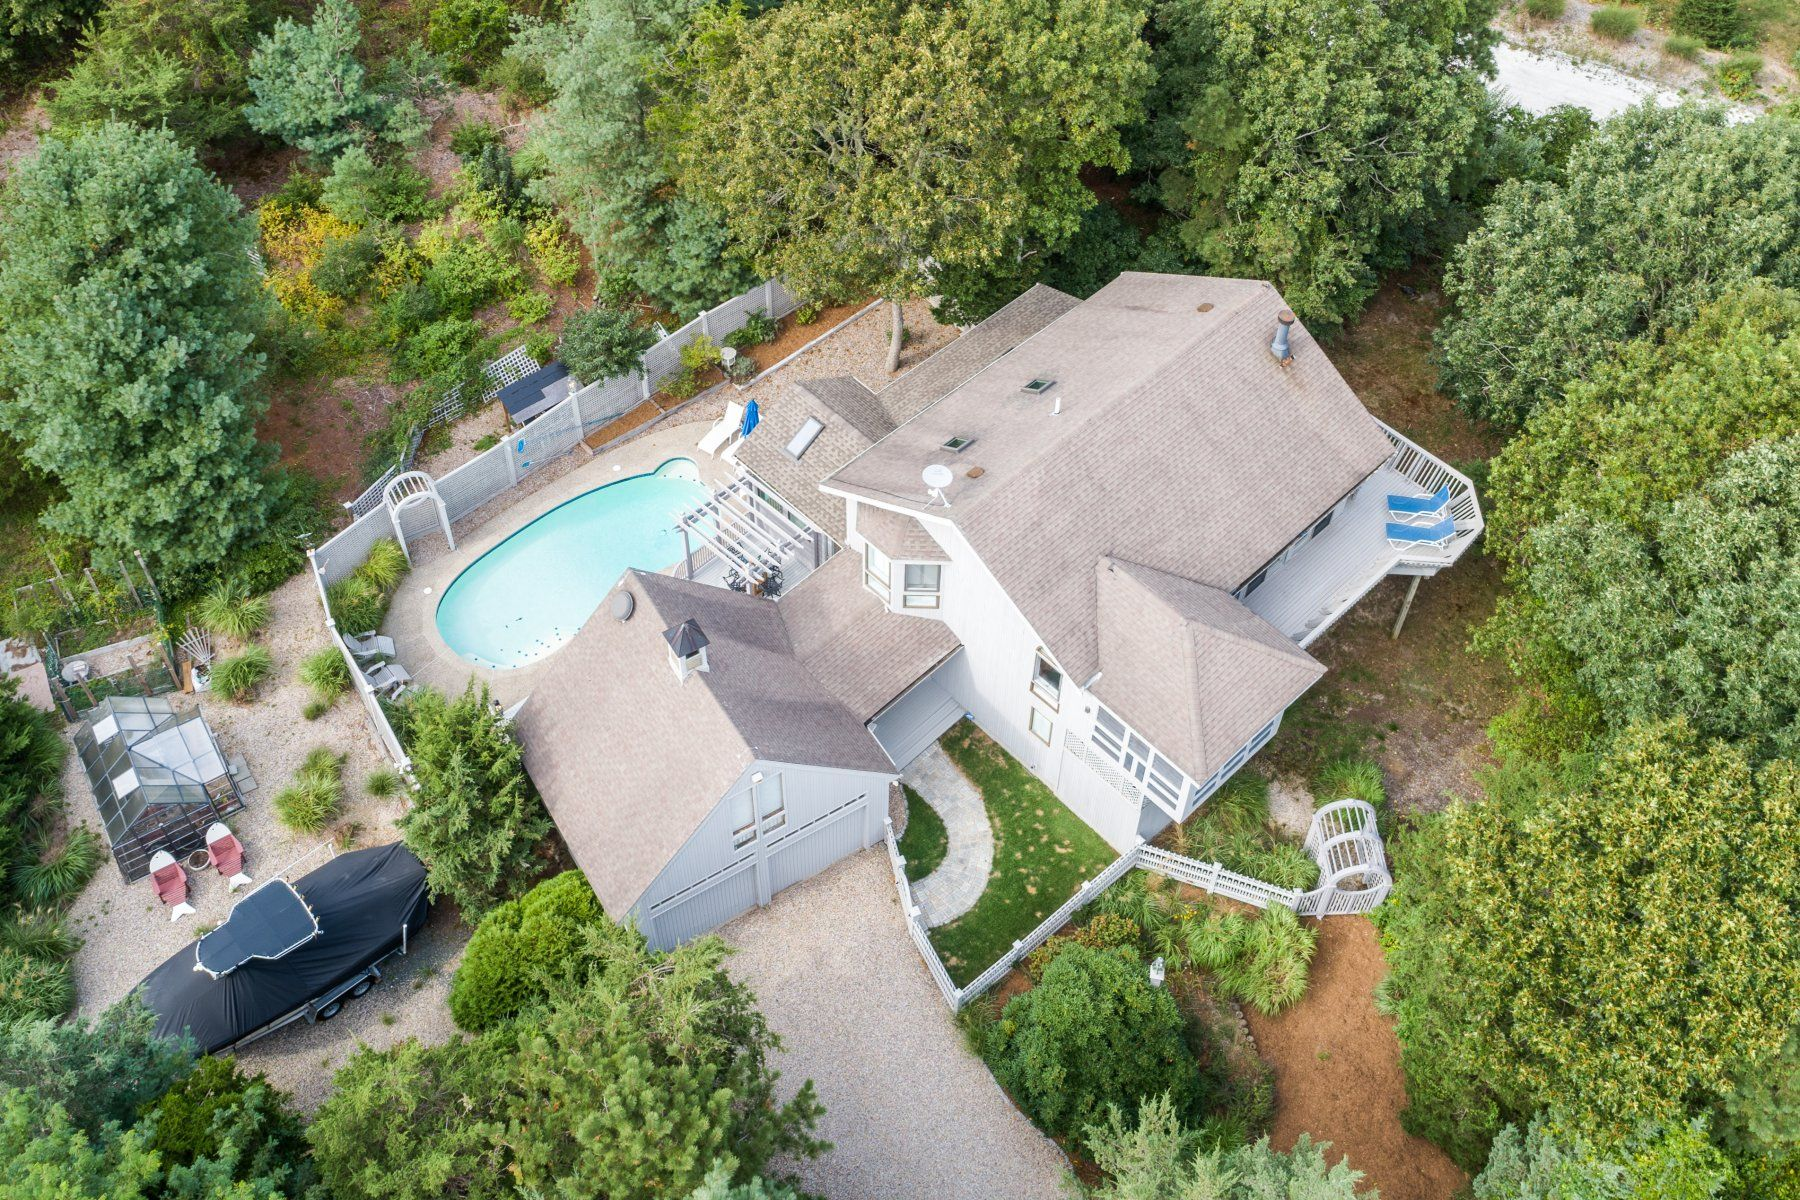 Single Family Home for Active at 4 Salt River Road, East Falmouth 4 Salt River Road East Falmouth, Massachusetts 02536 United States